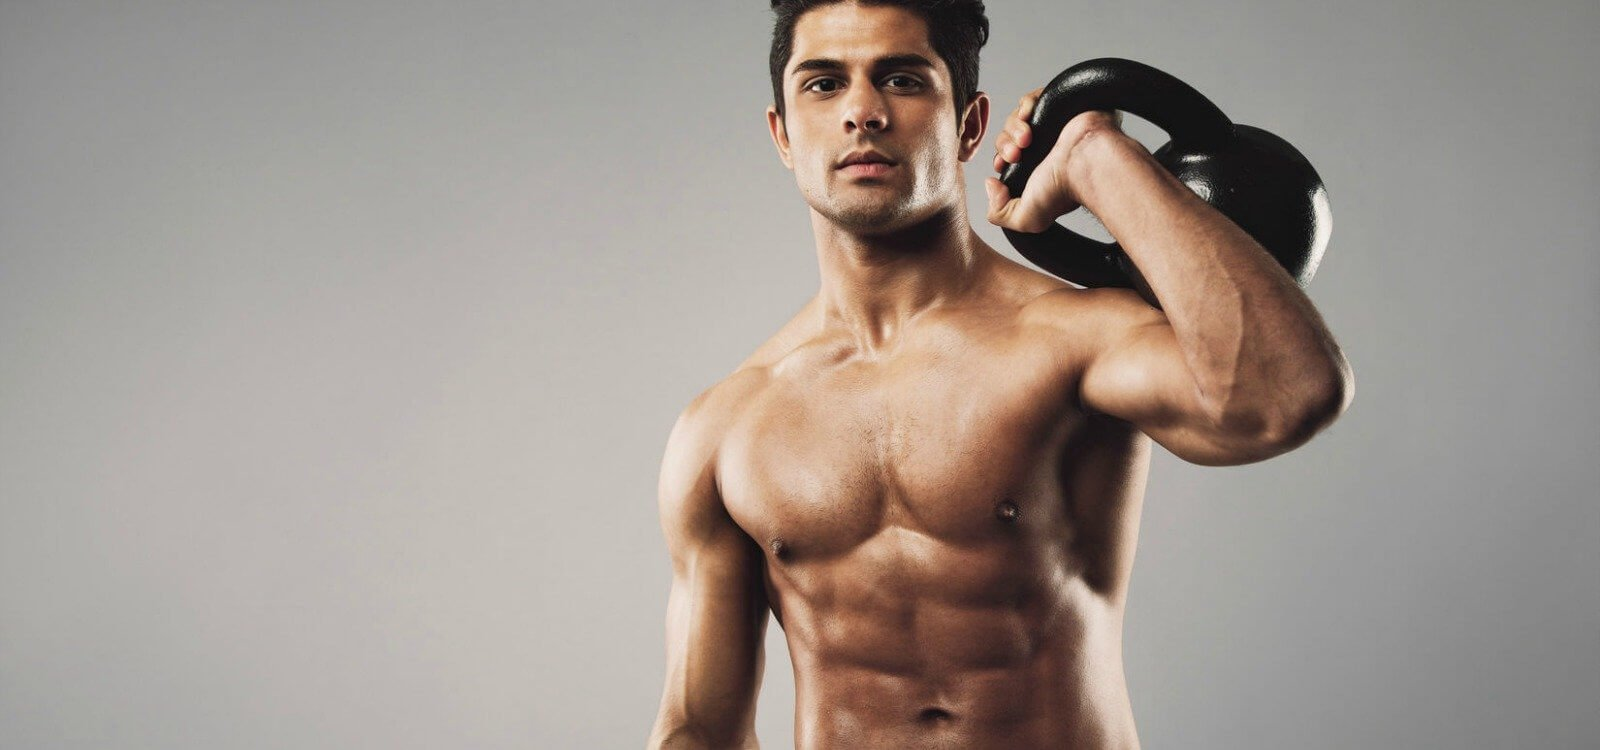 My Top 7 Tips for Teenagers Who Want to Lift Weights